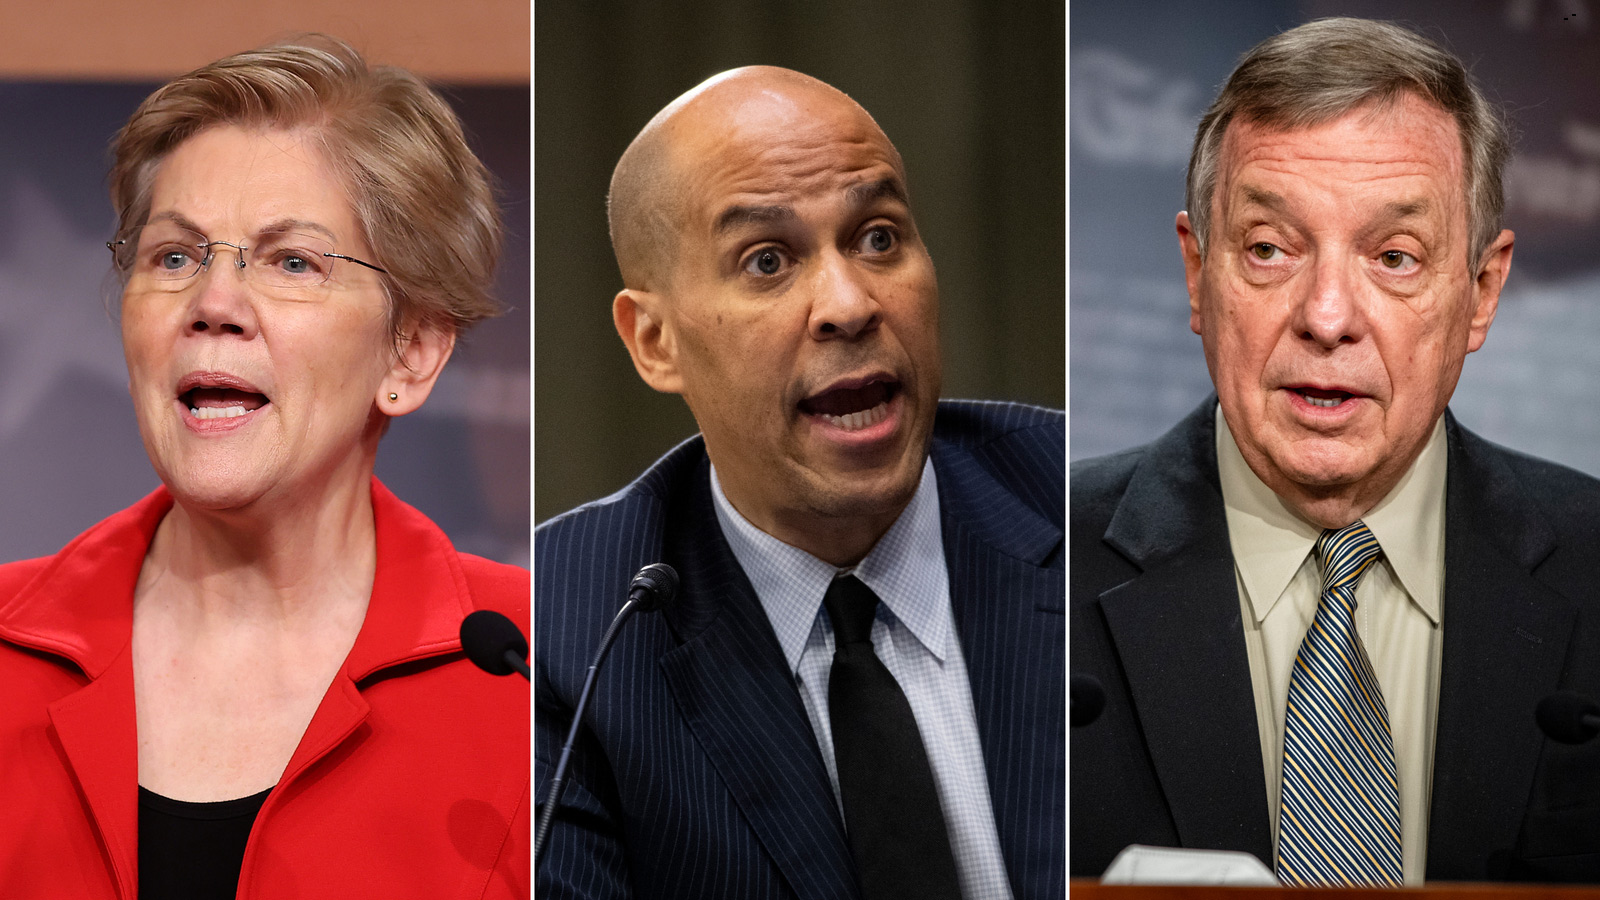 From left to right, Sens. Elizabeth Warren, Cory Booker and Dick Durbin